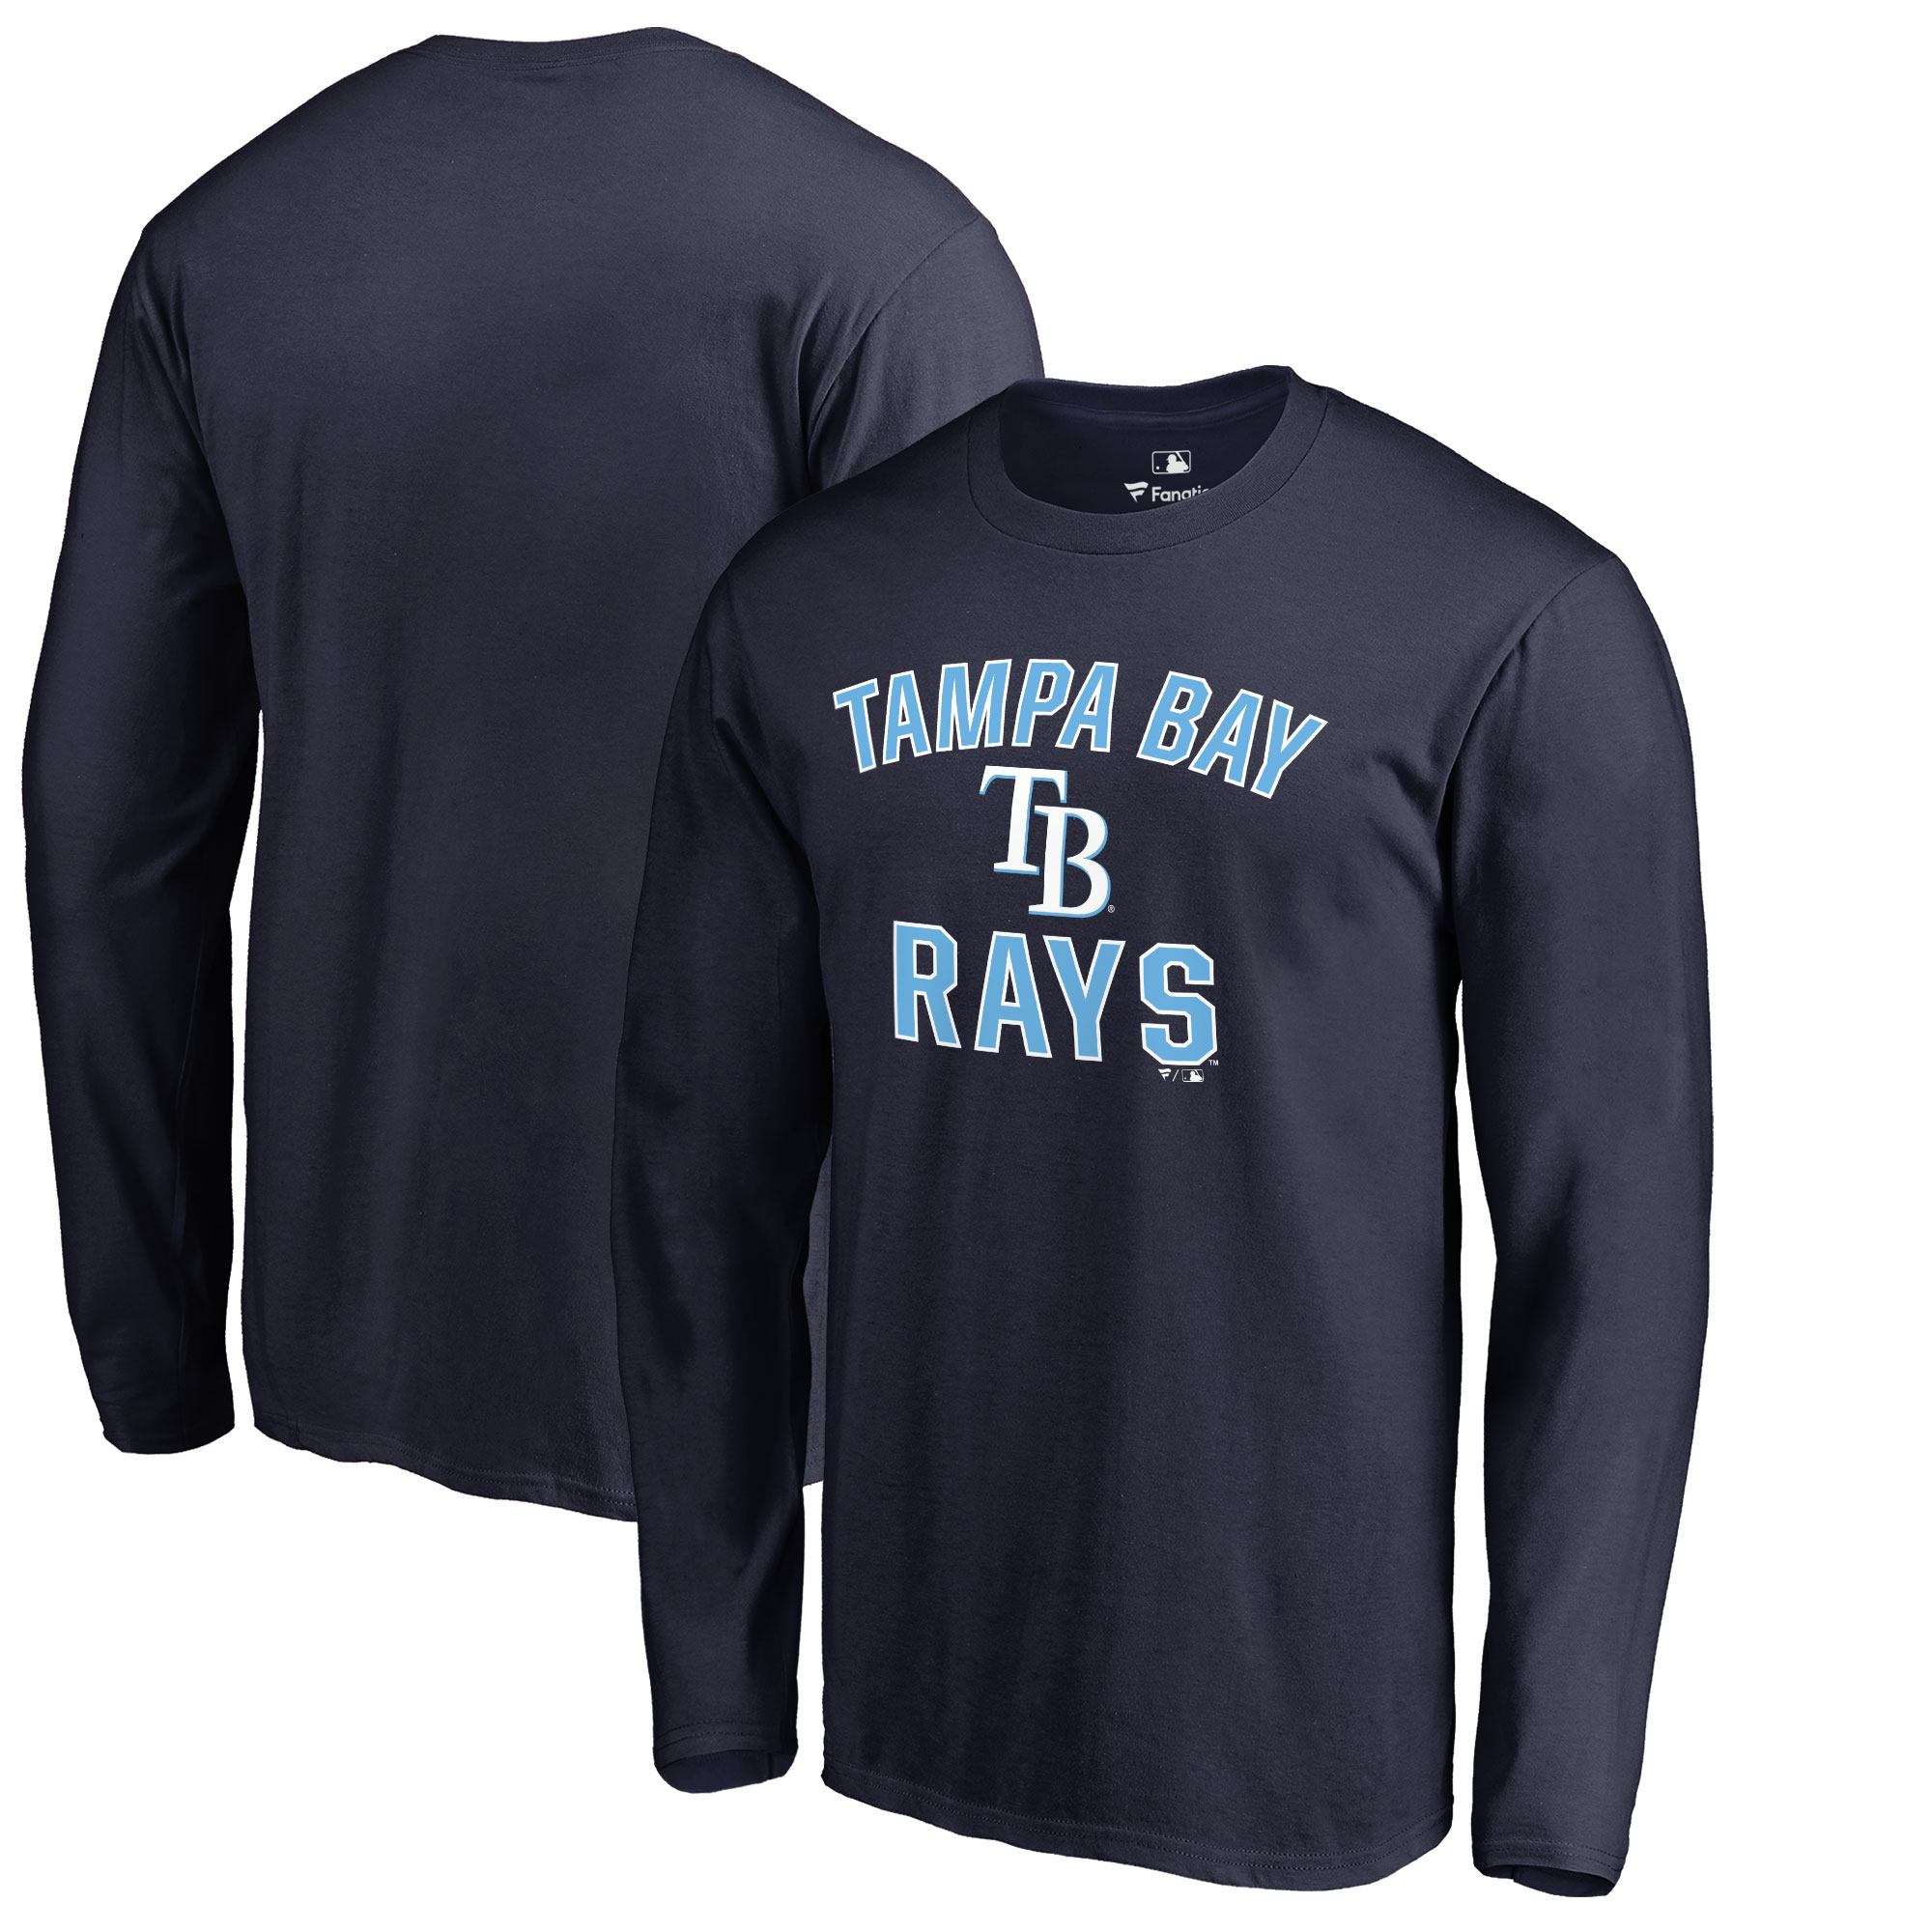 Tampa Bay Rays Victory Arch Big & Tall Long Sleeve T-Shirt - Navy